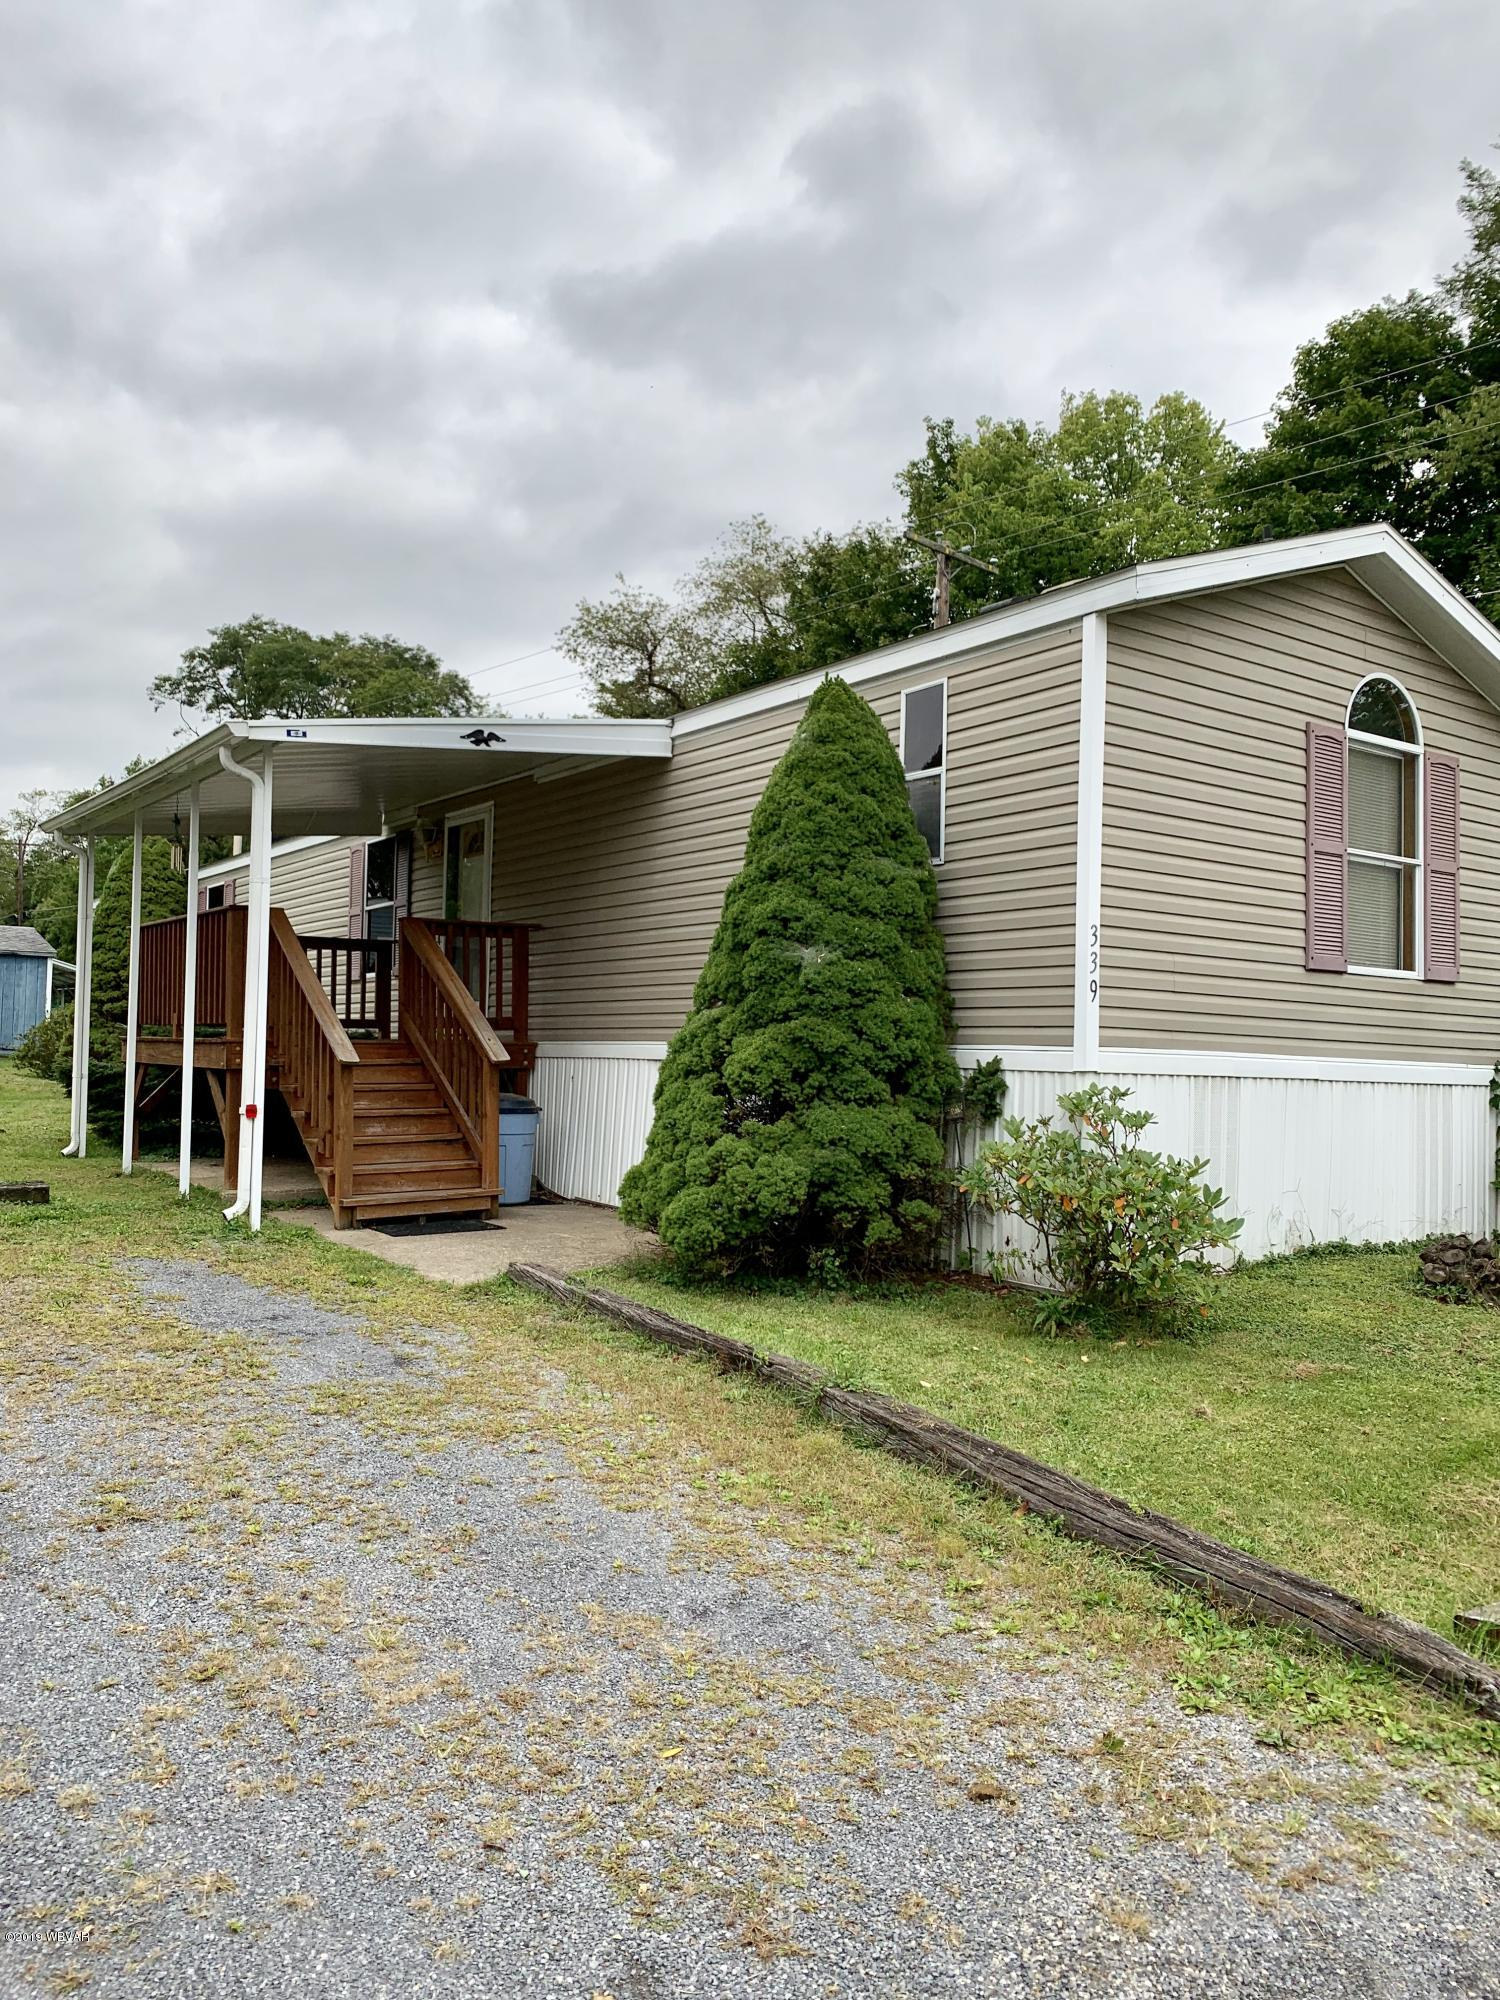 339 SHADY ACRES LANE,Jersey Shore,PA 17740,3 Bedrooms Bedrooms,2 BathroomsBathrooms,Residential,SHADY ACRES,WB-88559